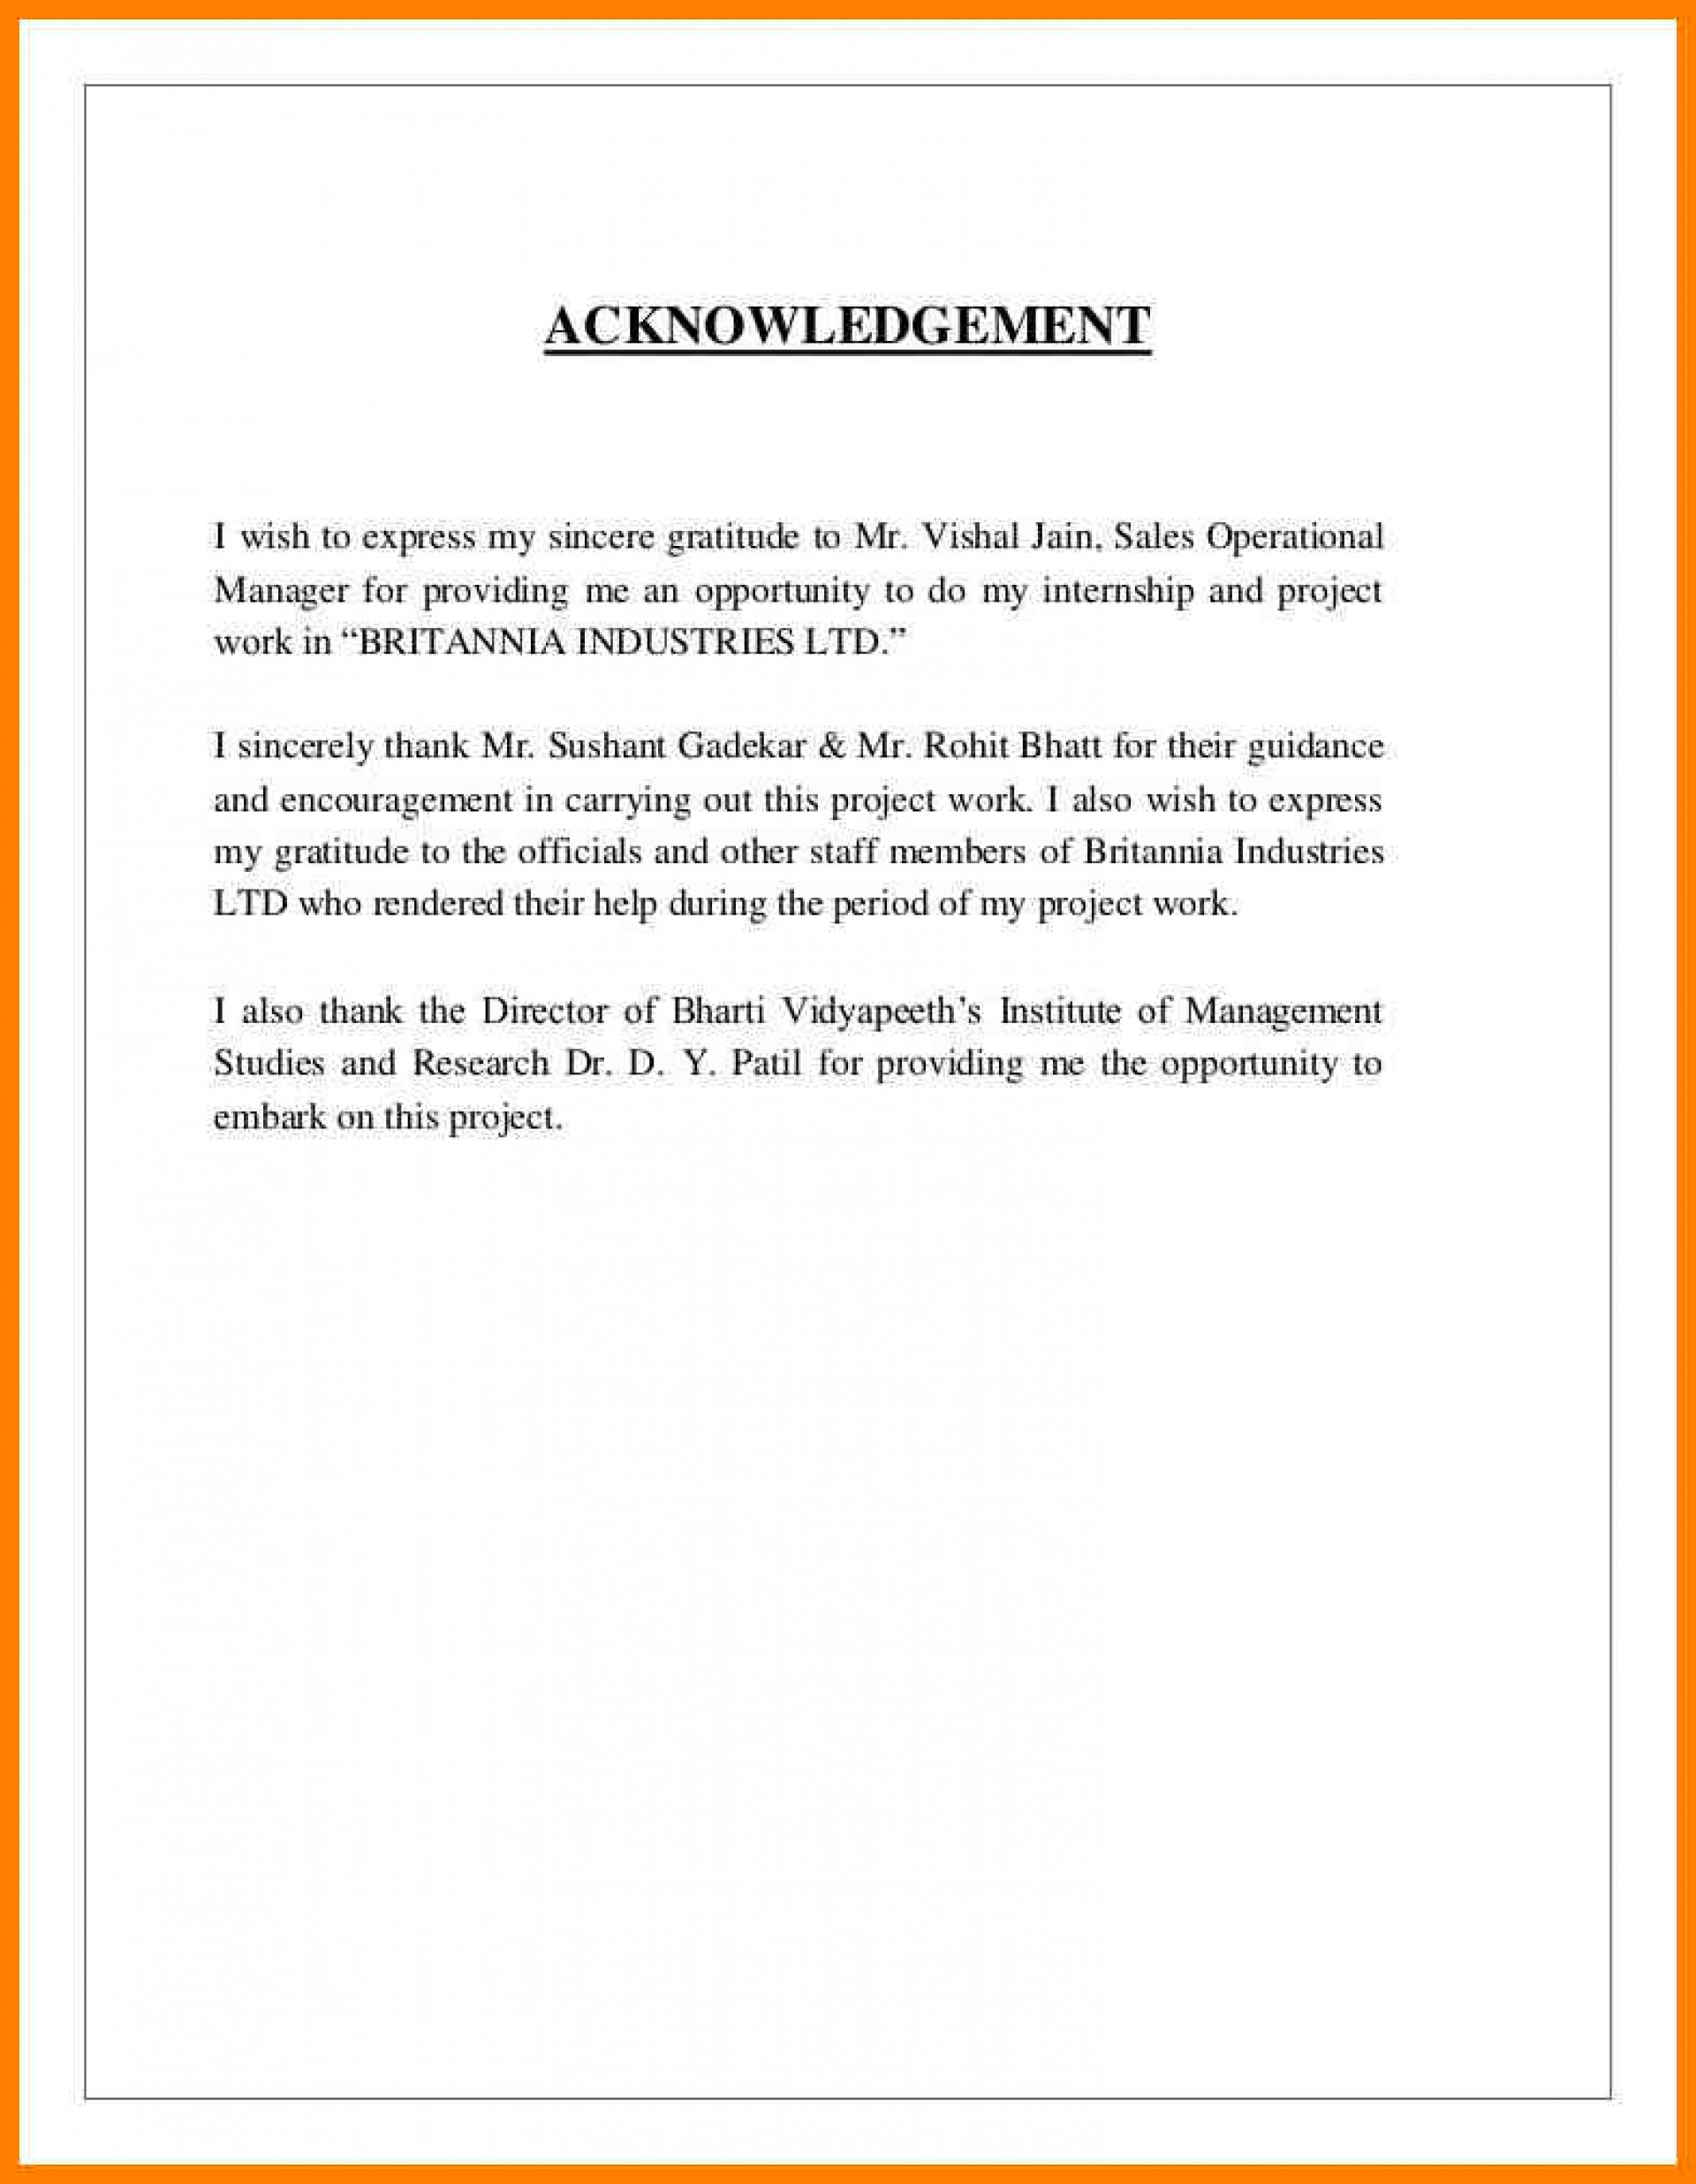 027 Sample Acknowledgement Page For Research Papers On Free Term Paper Essays Apa Short Essay Format Staggering Topic Proposal Childhood Obesity Writing 1920